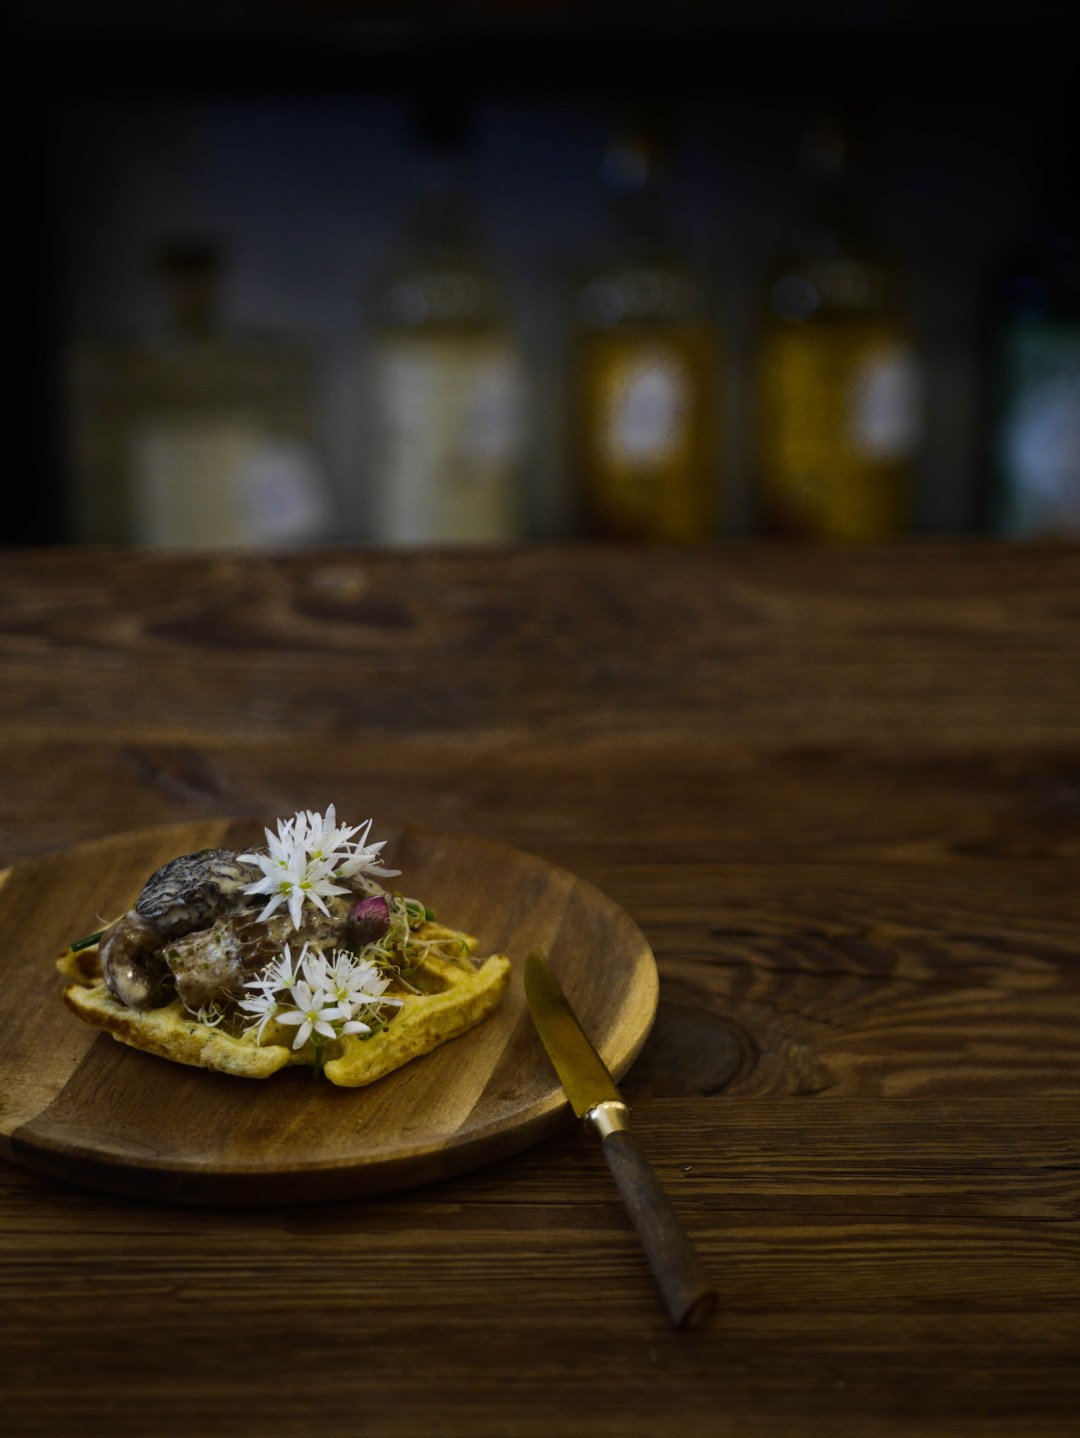 gaufres-beaufort-morilles-fabulleuses-de-champagne-marie-camille-bousson-marina-rodrigues-woodmoodfood-8